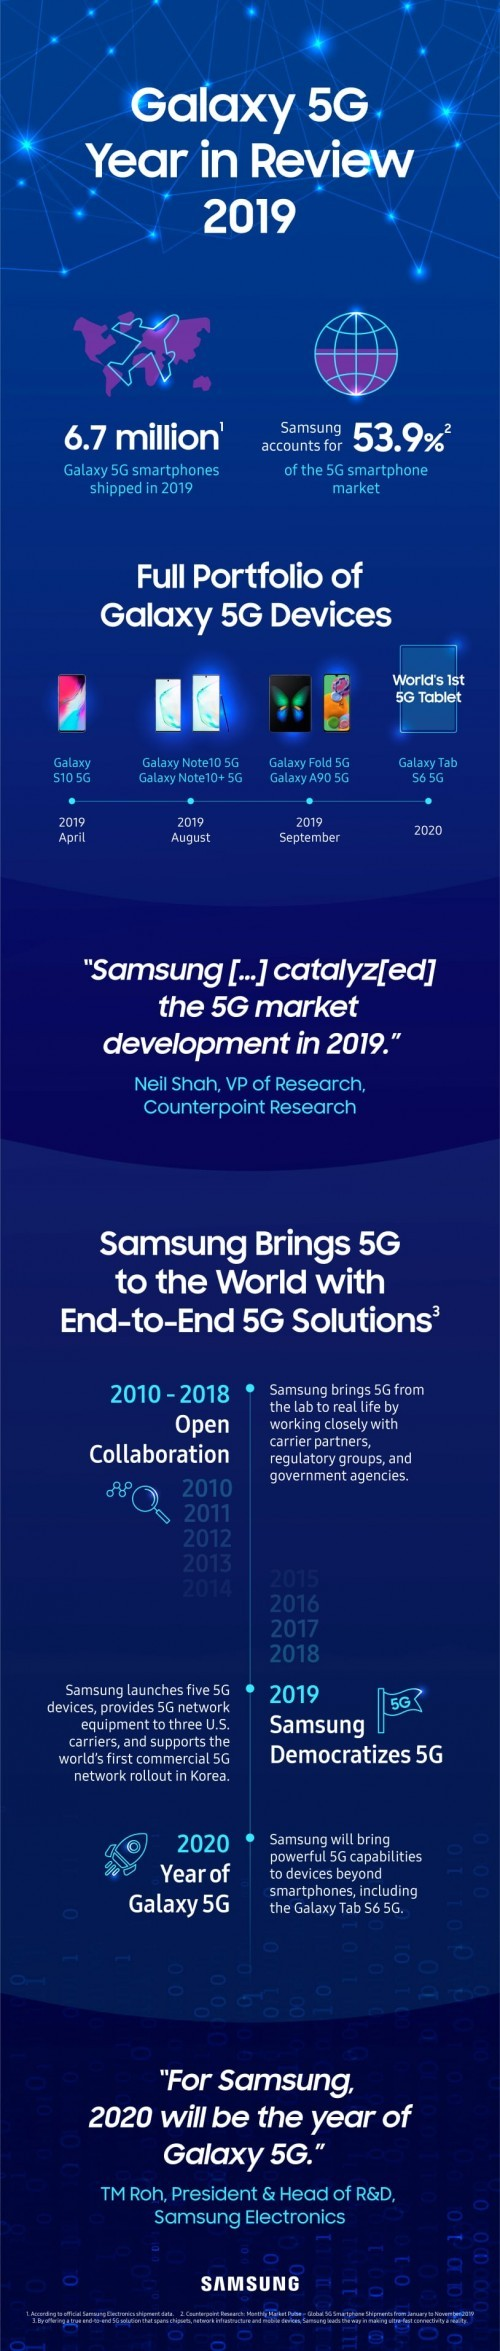 Samsung shipped more than 6.7m 5G devices in 2019